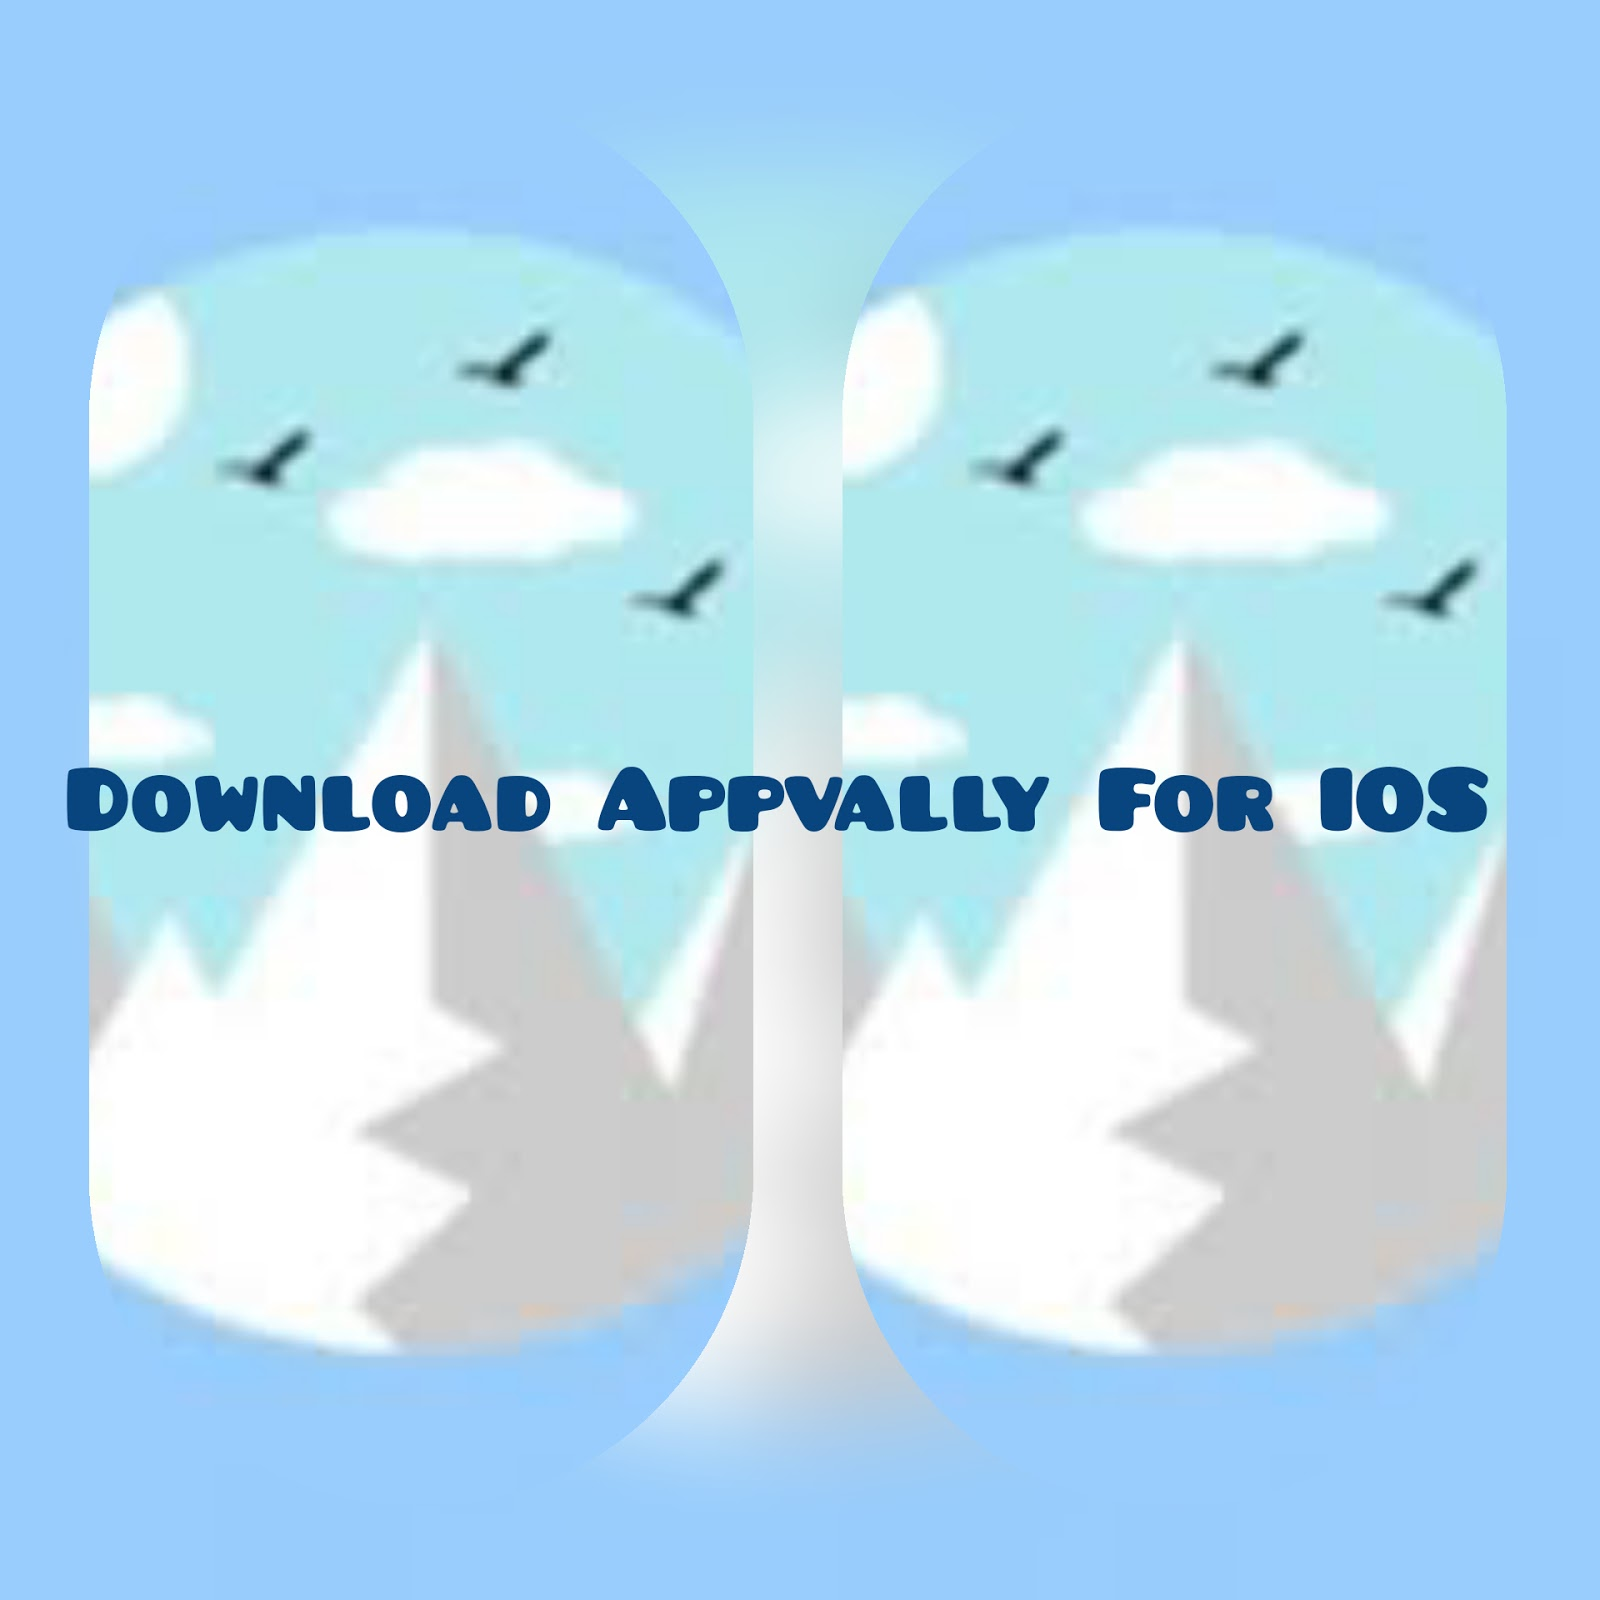 Appvalley Download for IOS/Iphone/IPod without Jailbreak